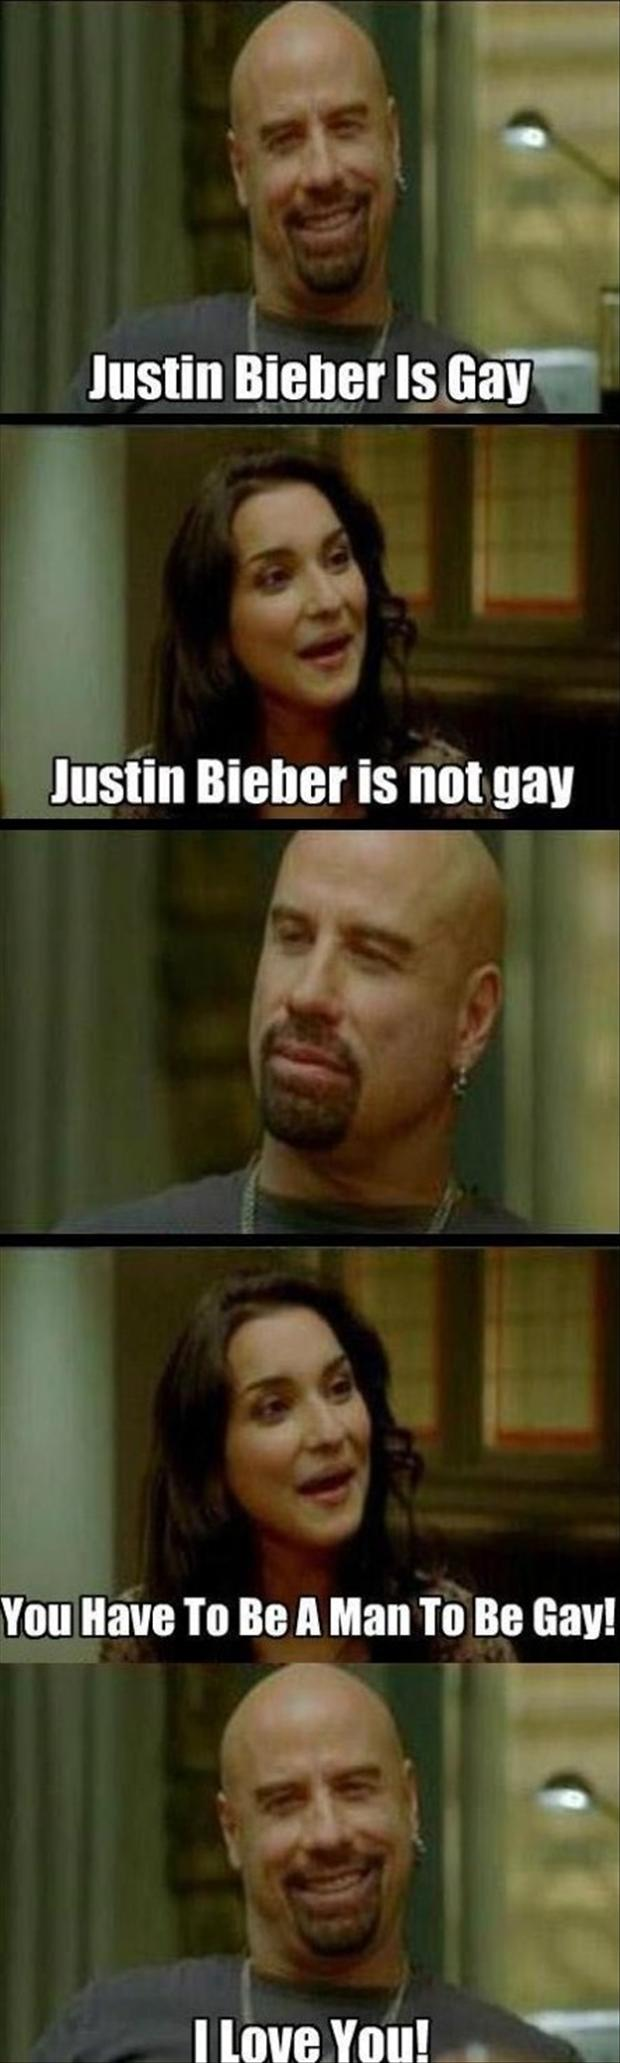 justin bieber is gay, funny pictures